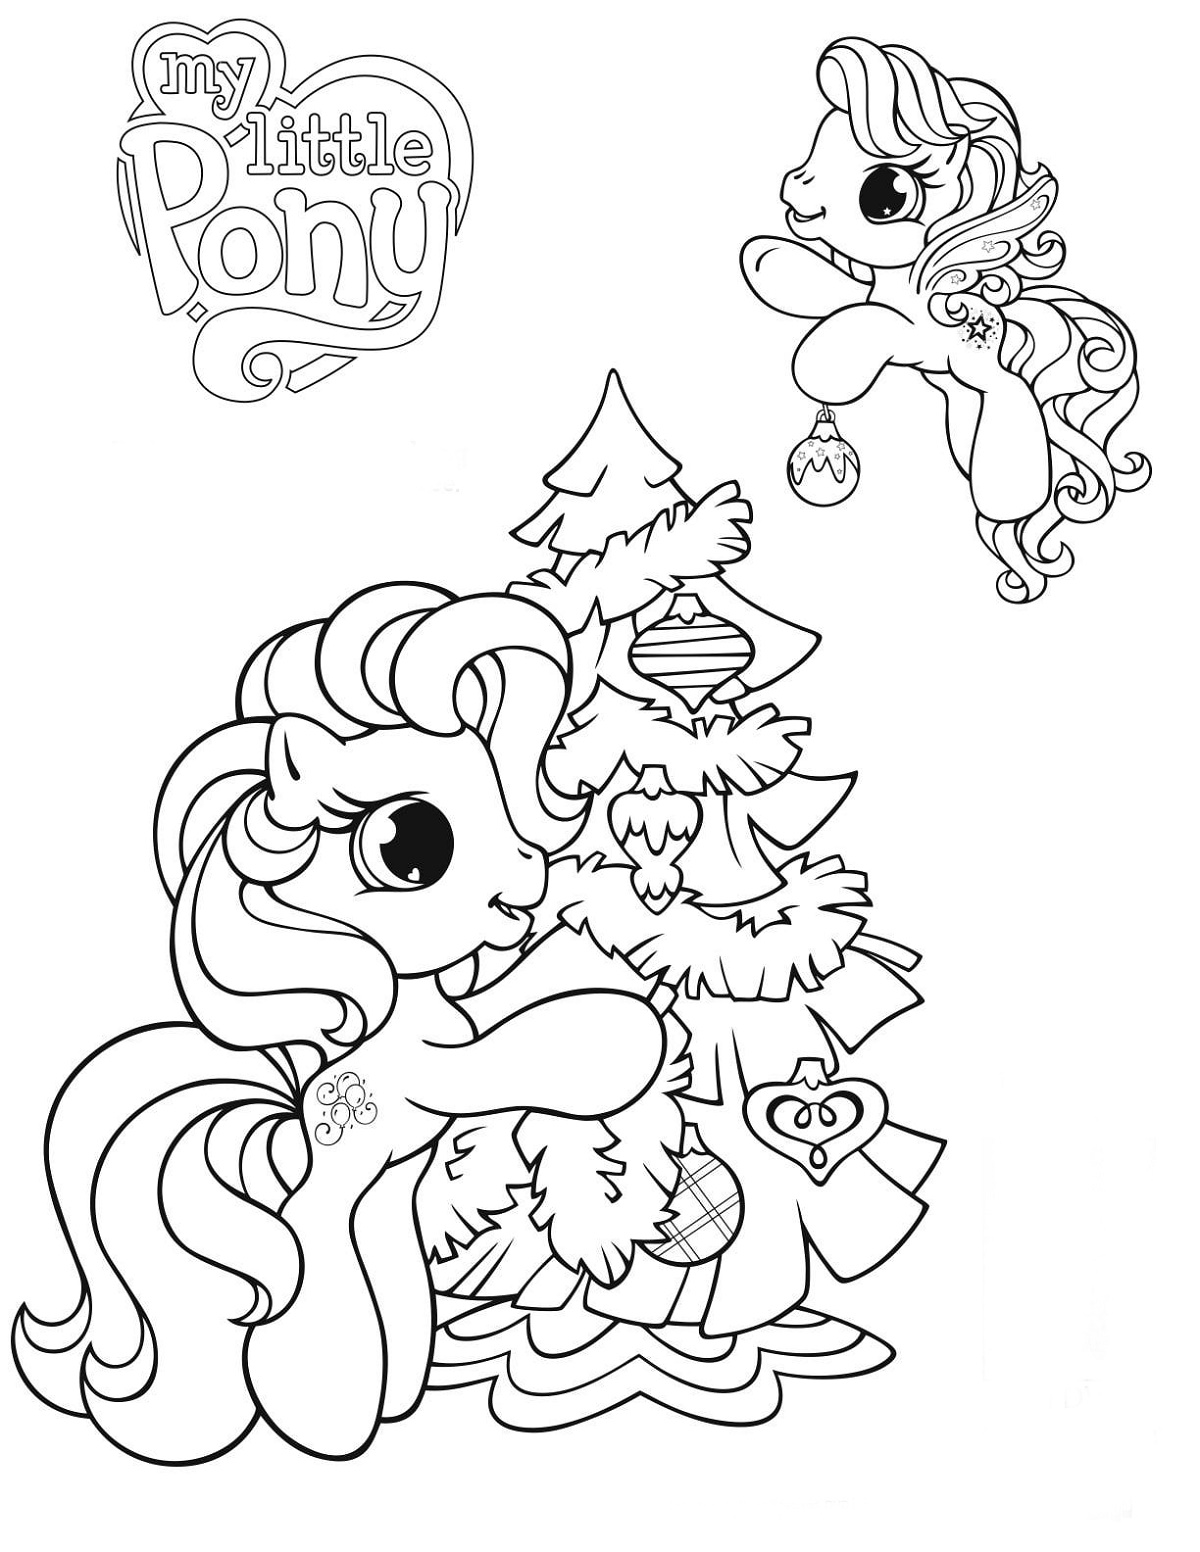 My Little Pony Coloring Pages Pdf Christmas